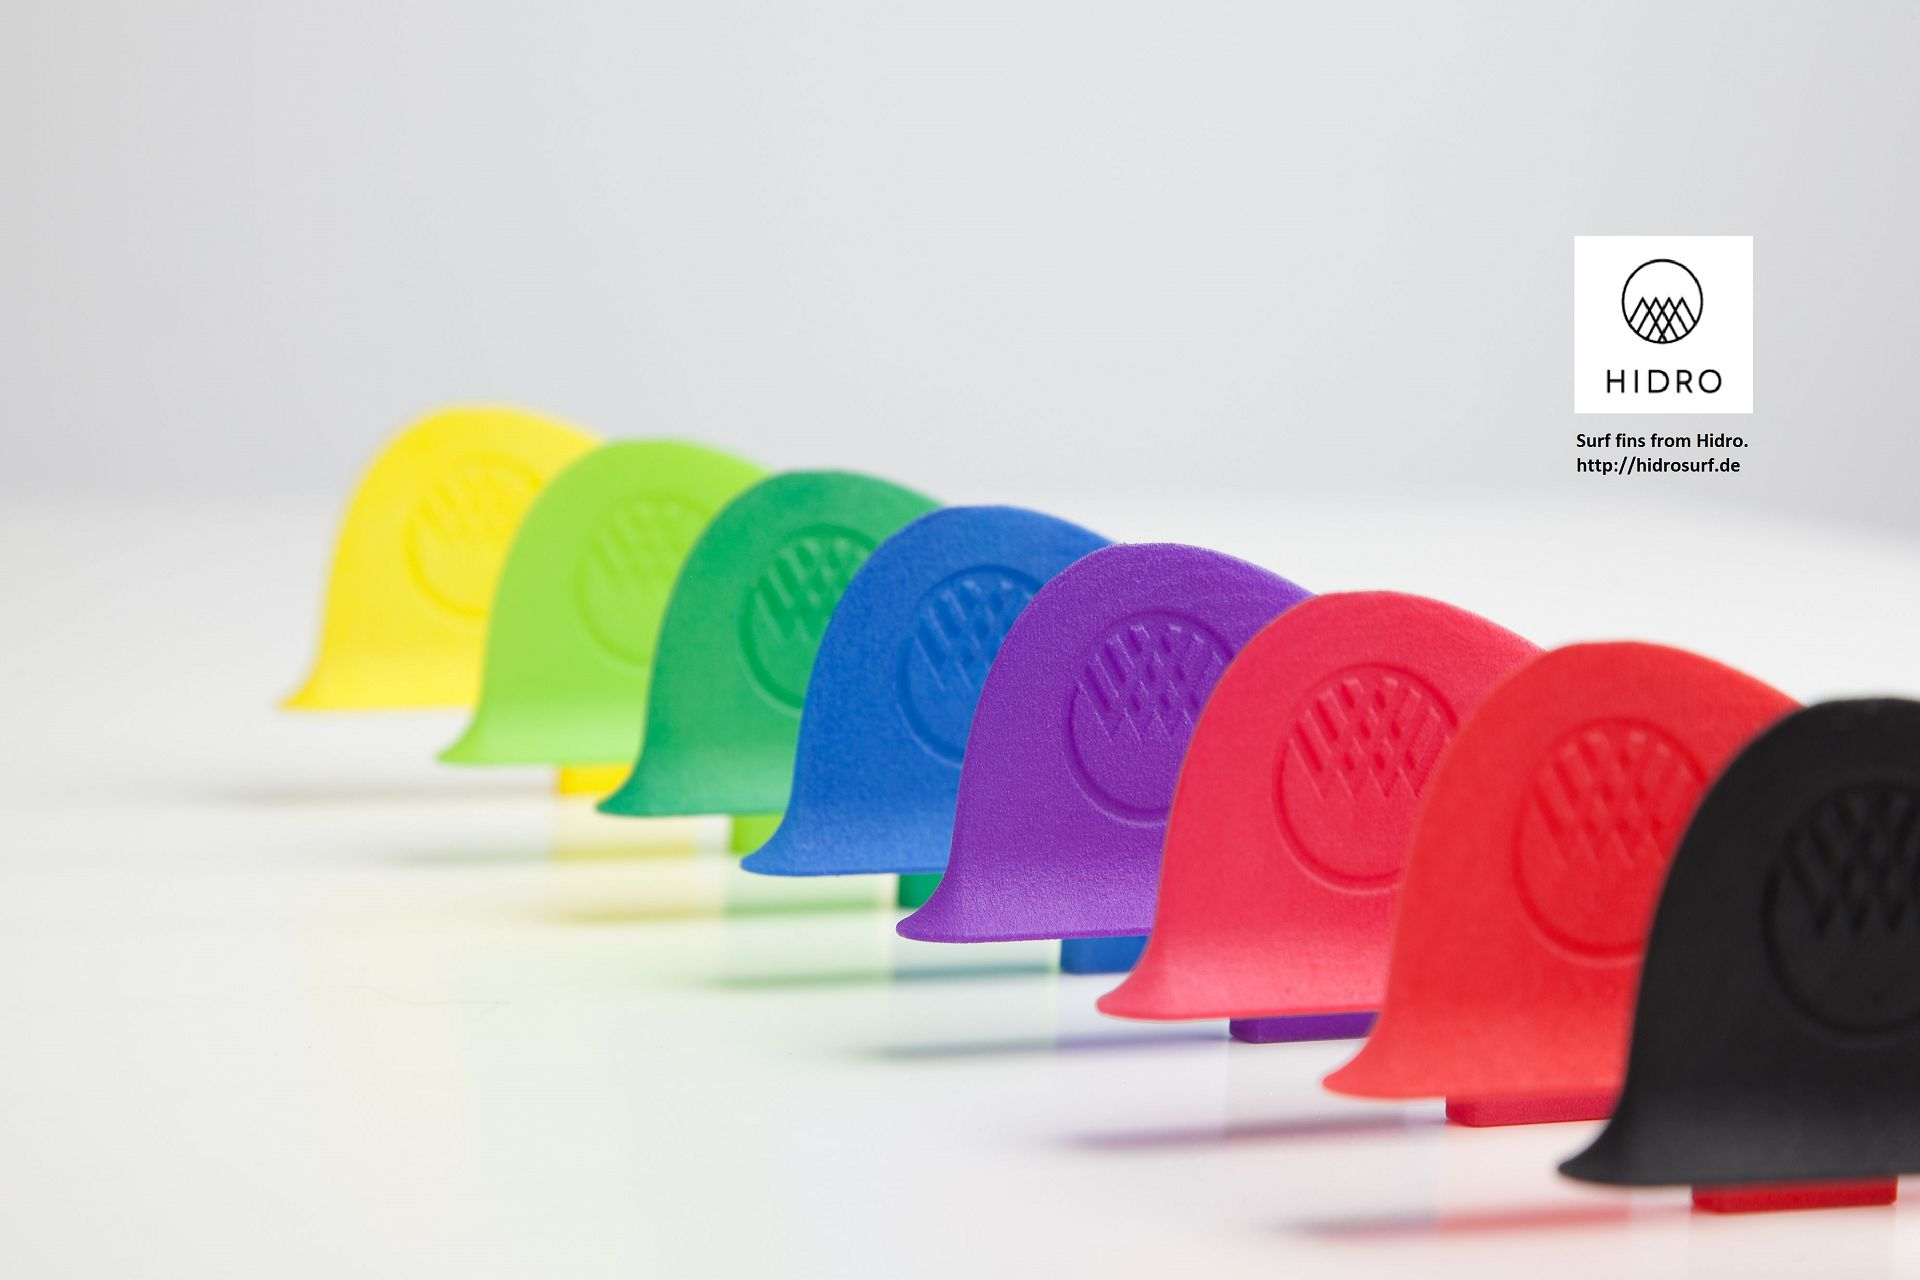 DyeMansion Launches SLS Coloring System at formnext